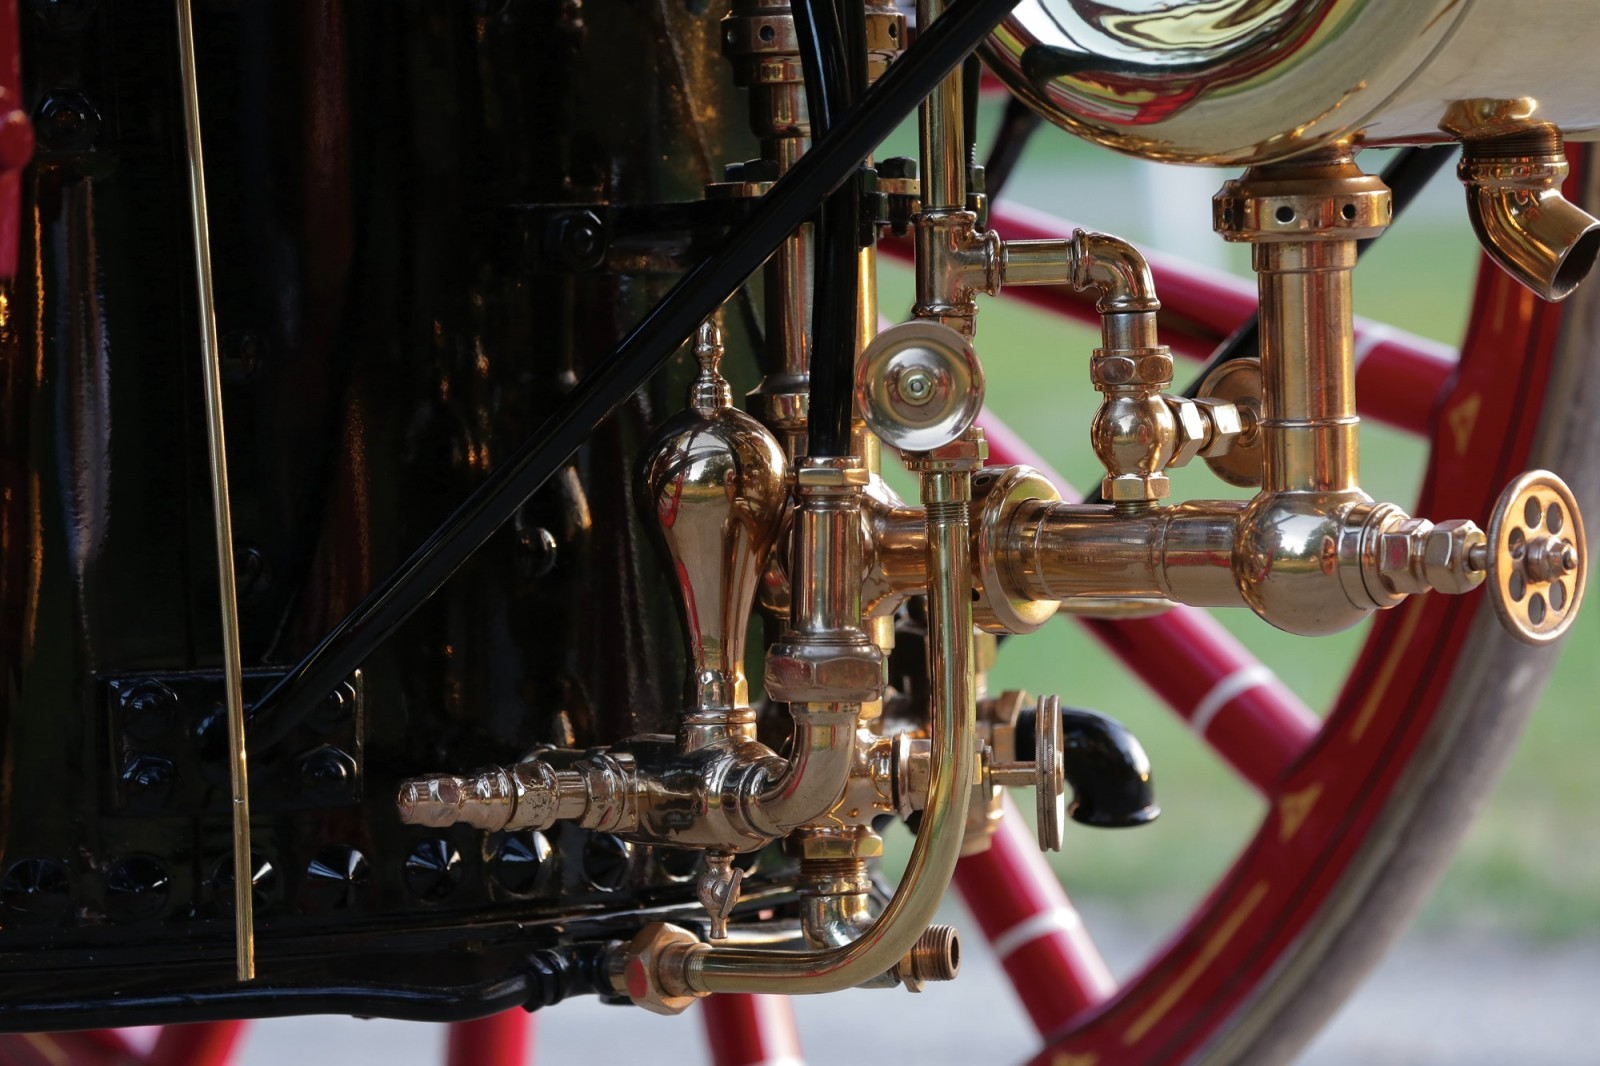 silsby horse drawn steam fire engine rm auctions amelia island  highlights